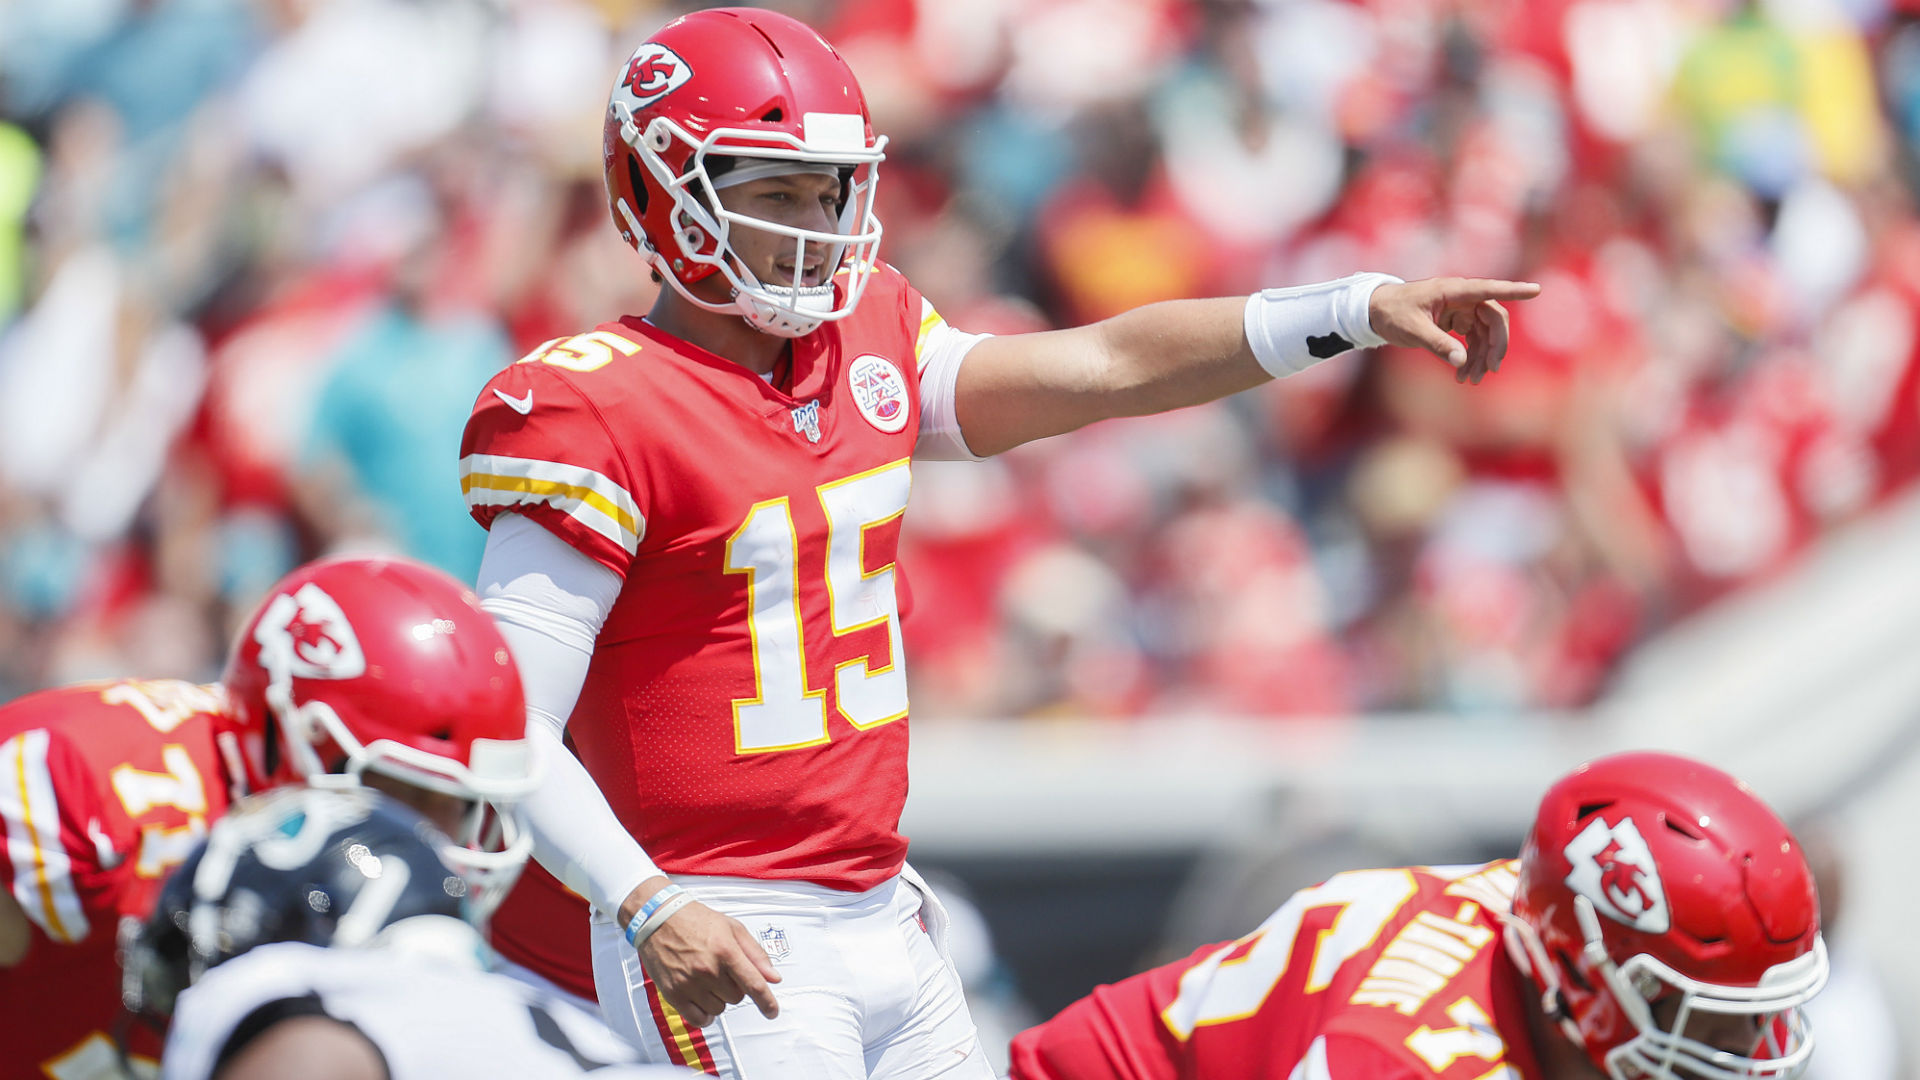 Reigning NFL MVP and Kansas City Chief quarterback Patrick Mahomes did not let an injury sideline him on Sunday.